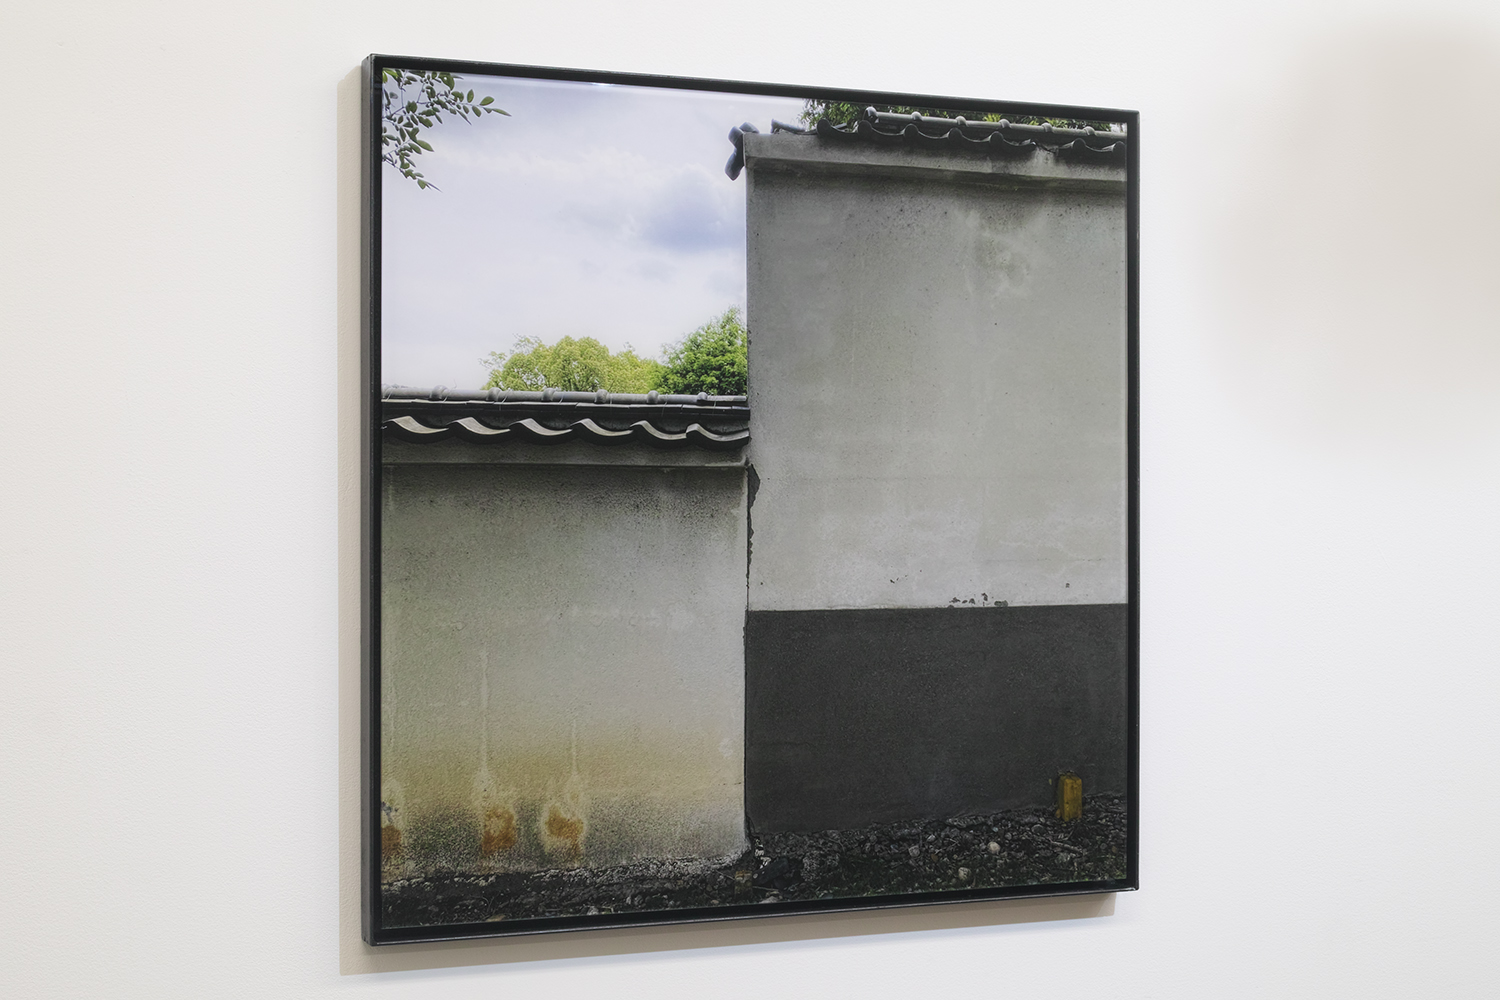 壁を眺める/Looking at a wall|Lambda silversalt print, acrylic board, iron|515 x 515 x 25 mm|2020<br>¥150,000-250,000